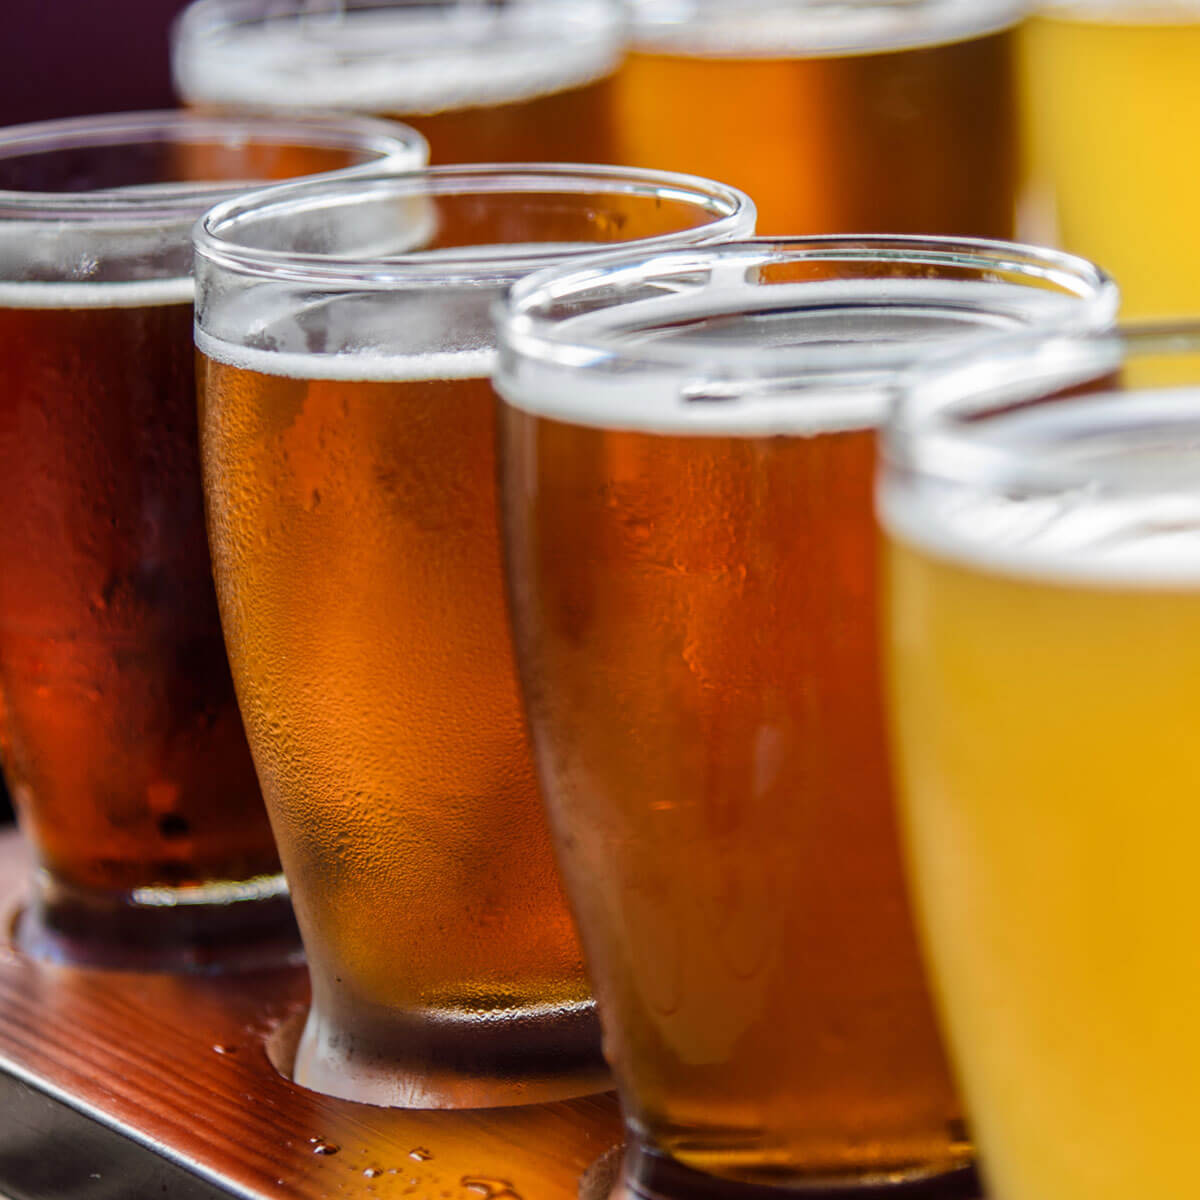 An Extensive Craft Beer Selection at MJ23 Sports Bar & Grill at Mohegan Sun